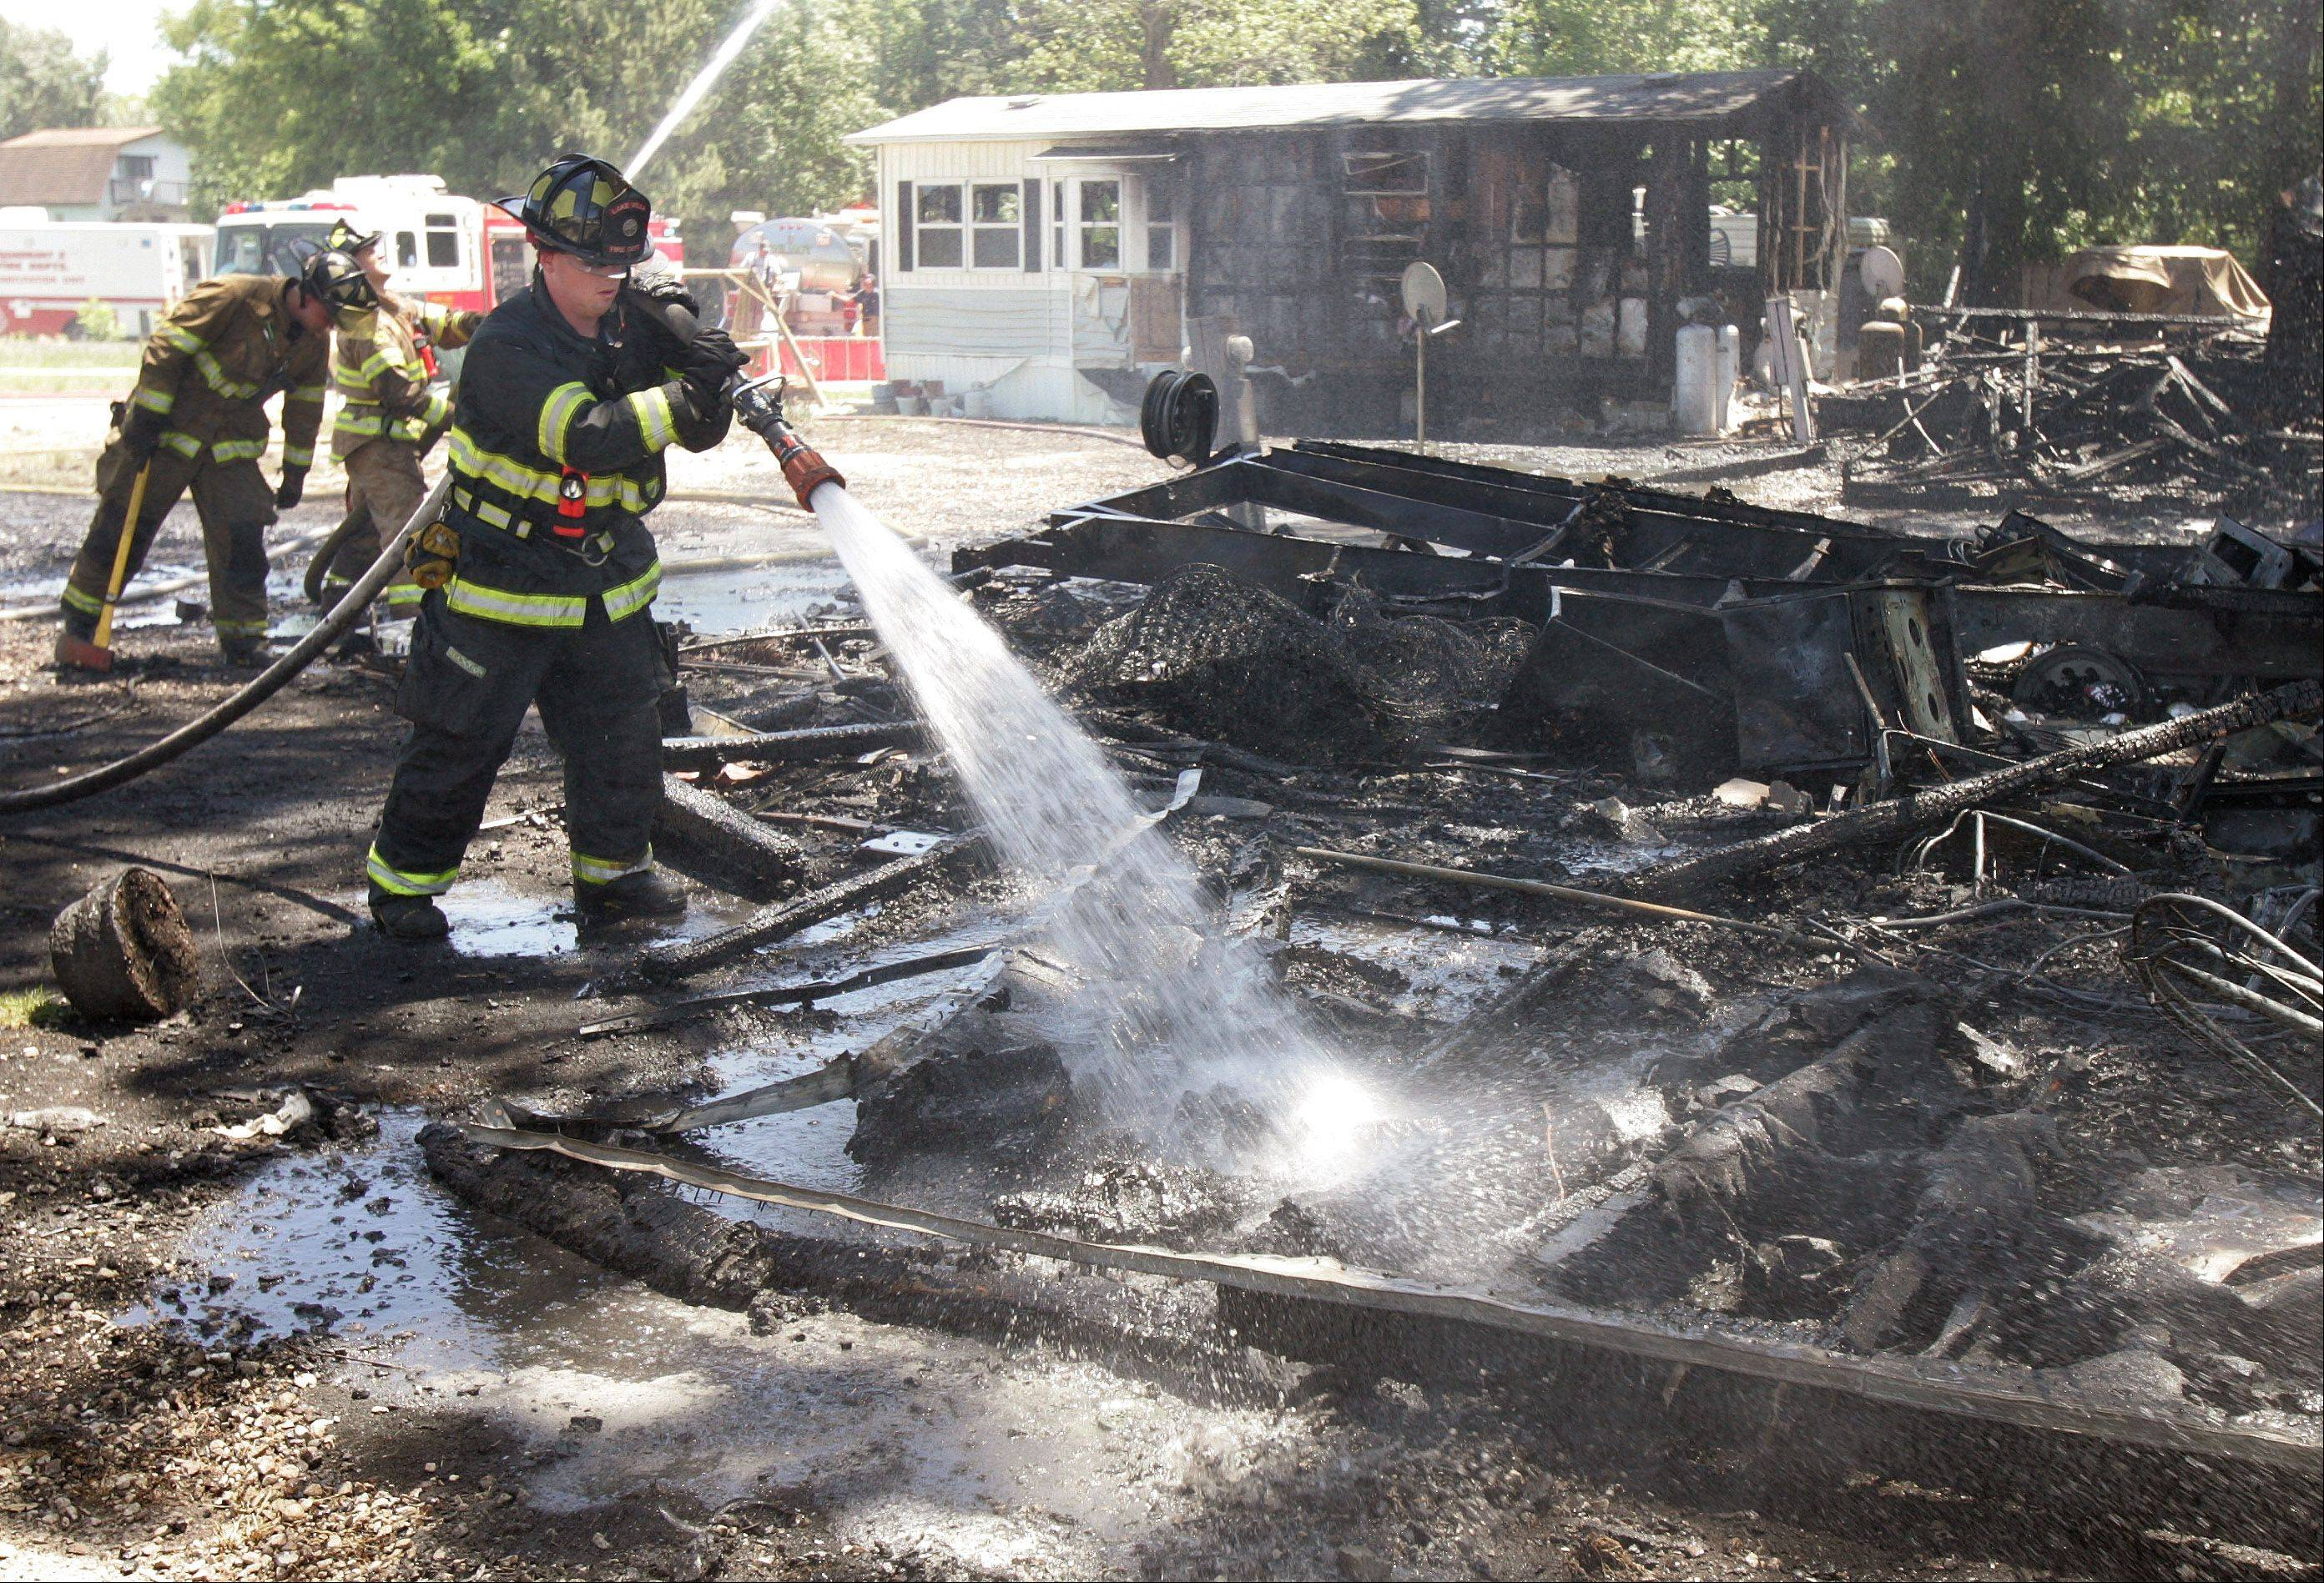 A Lake Villa firefighter sprays water on the remains of a mobile home as he joined other Lake County firefighters who battled a fire involving multiple mobile homes in Grass Lake Landing on Tuesday near Antioch. Fire departments from Antioch, Lake Villa, Fox Lake and Gurnee assisted in the multiple alarm fire.